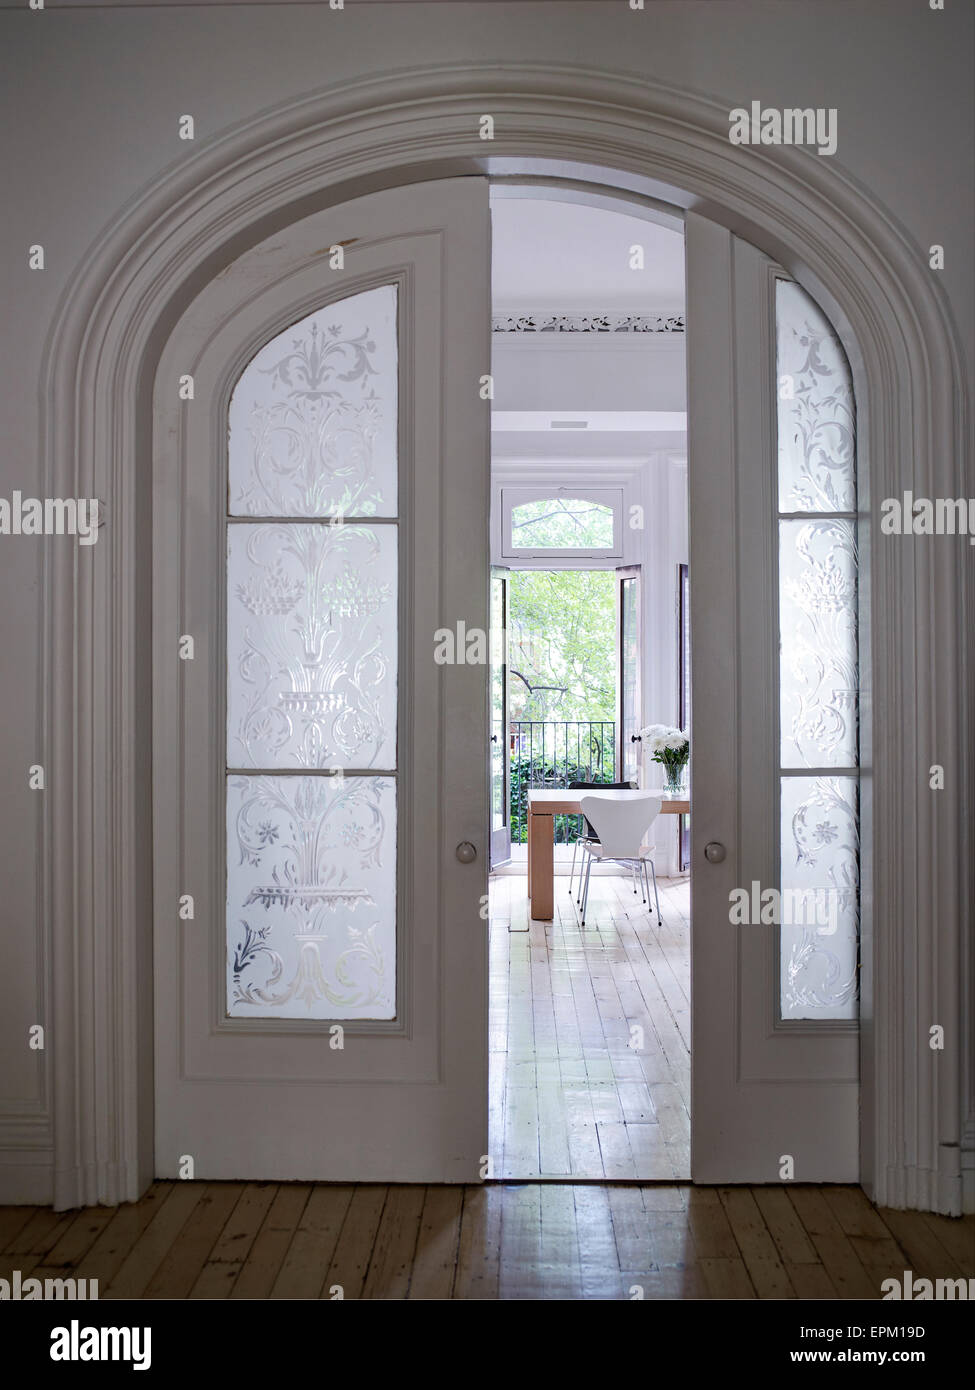 Wood and glass sliding doors in arched doorframe chelsea wood and glass sliding doors in arched doorframe chelsea townhouse new york usa planetlyrics Choice Image